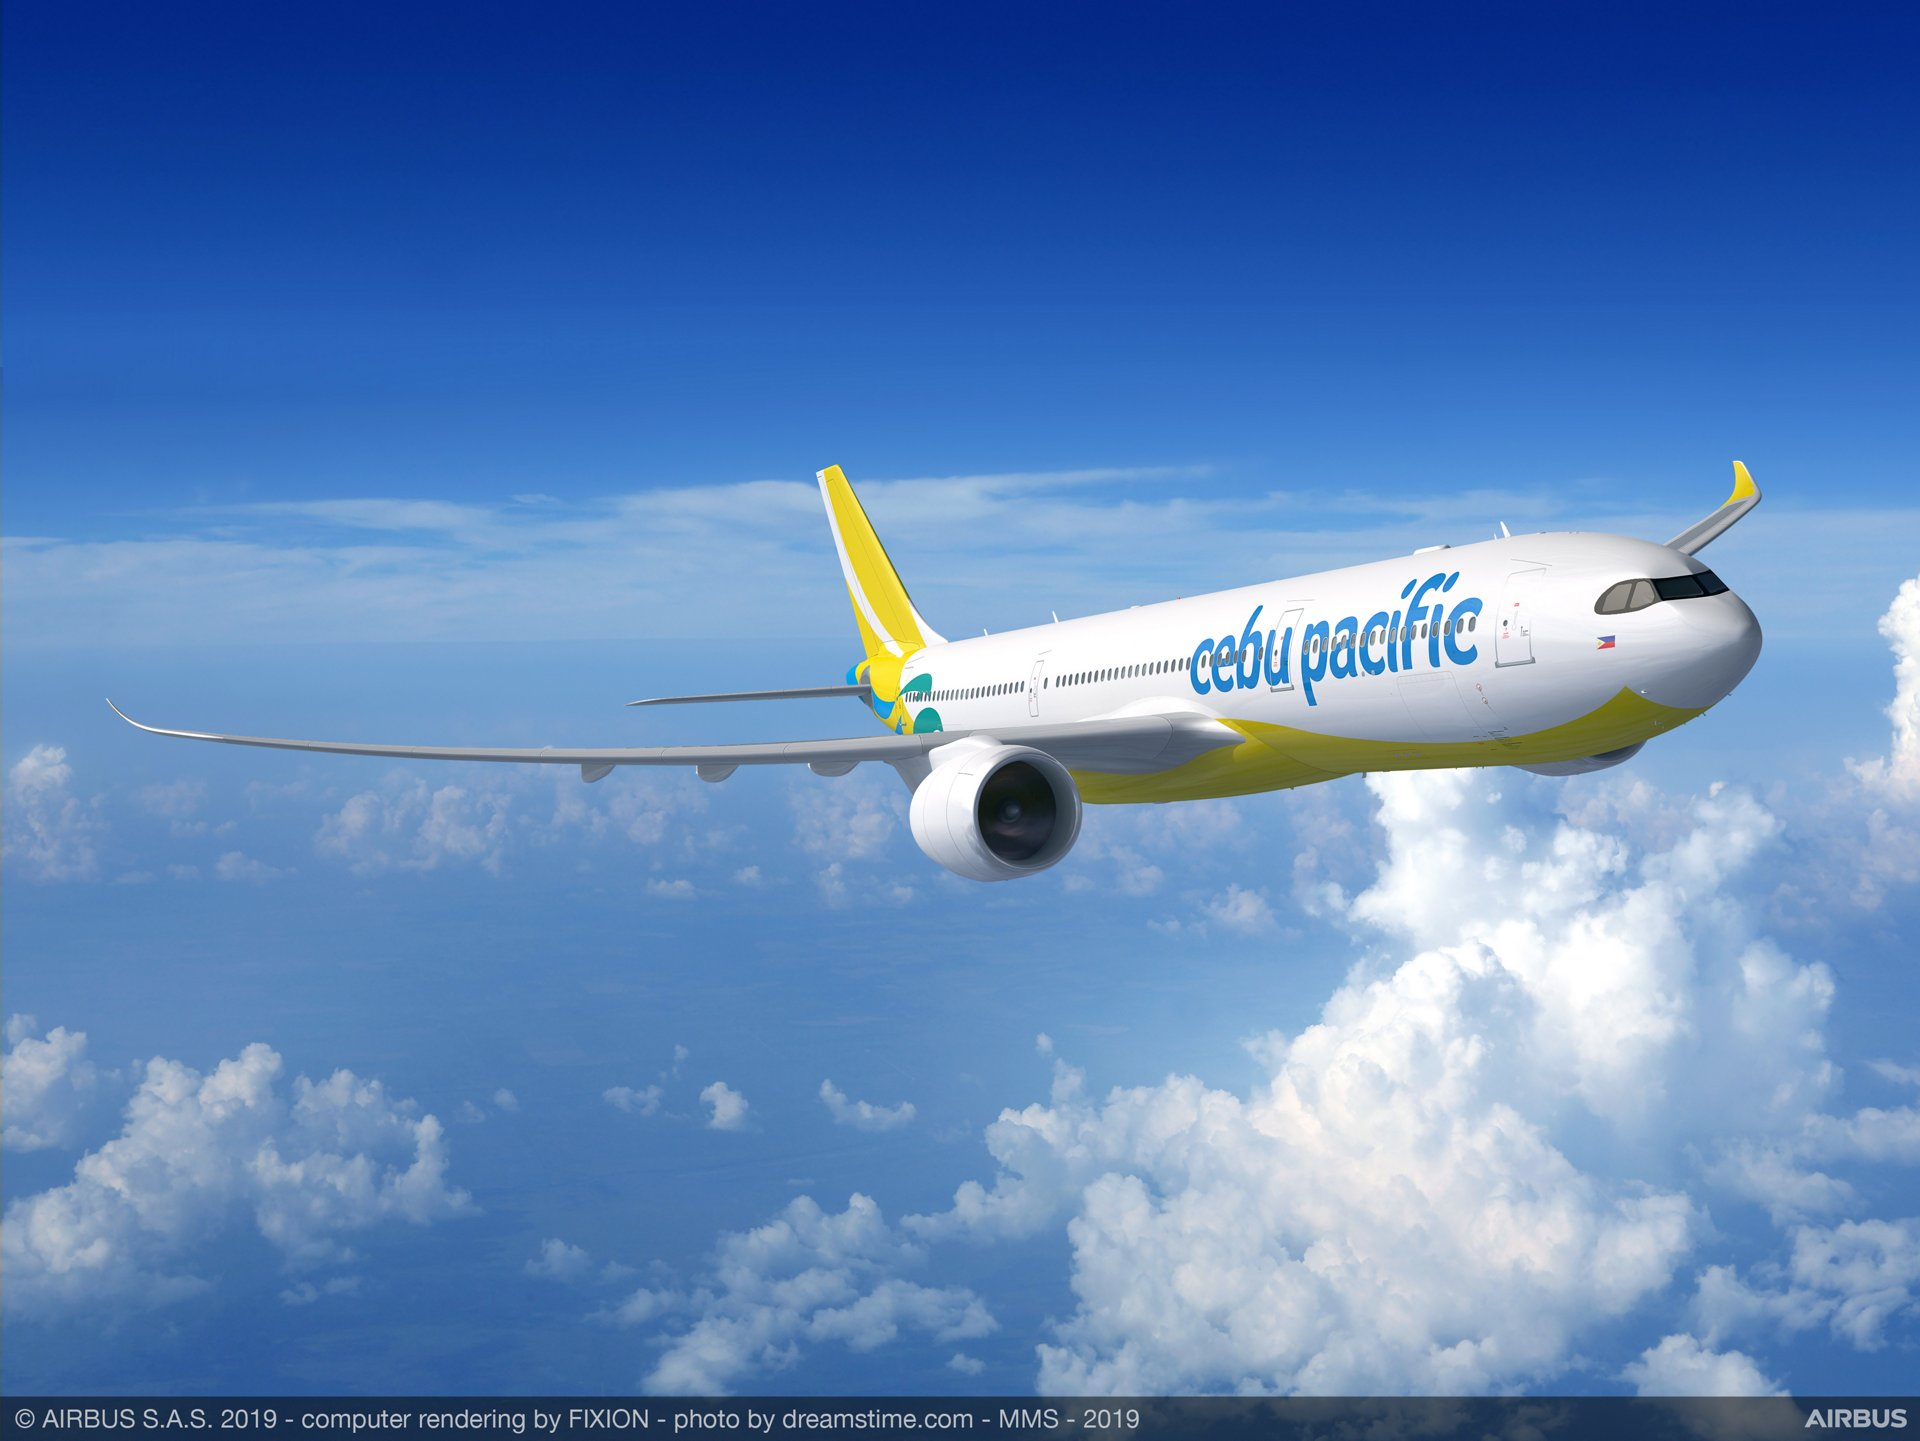 Philippines-based carrier Cebu Pacific signed a firm order for 16 long-range A330neo aircraft as part of its fleet modernisation programme